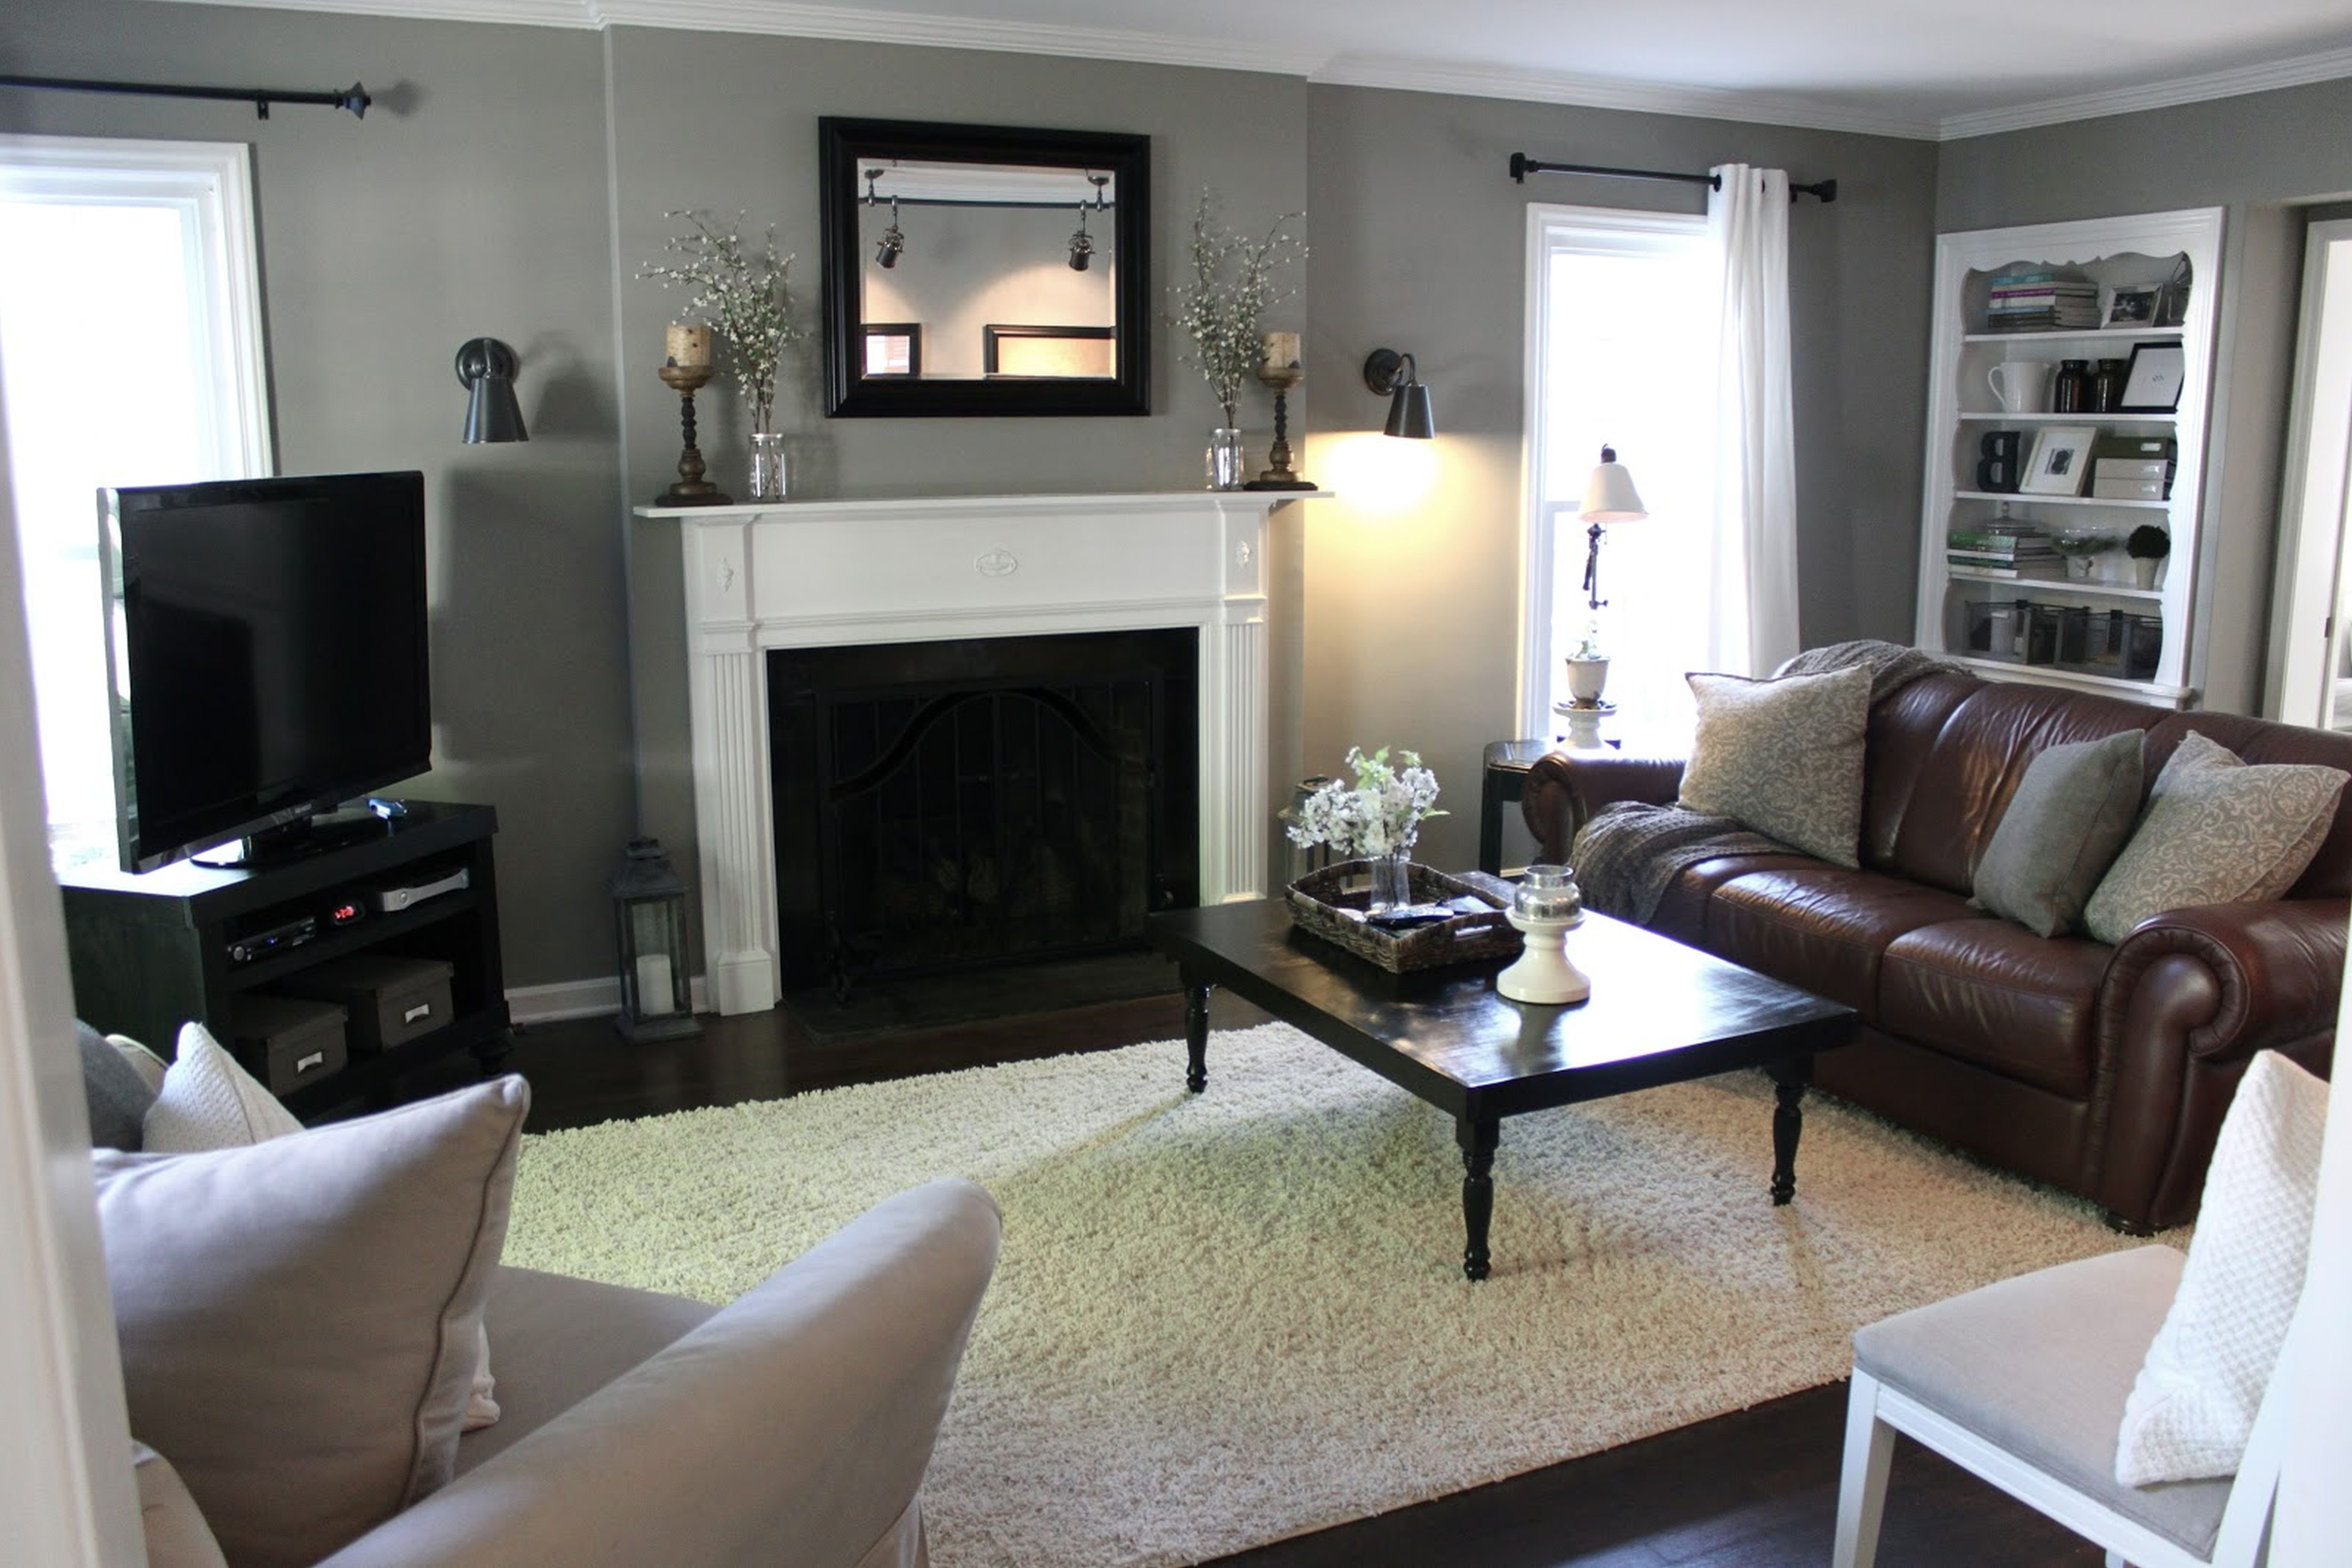 10 Unique Paint For Living Room Ideas besf of ideas cool room colors design ideas for teenagers living 2020